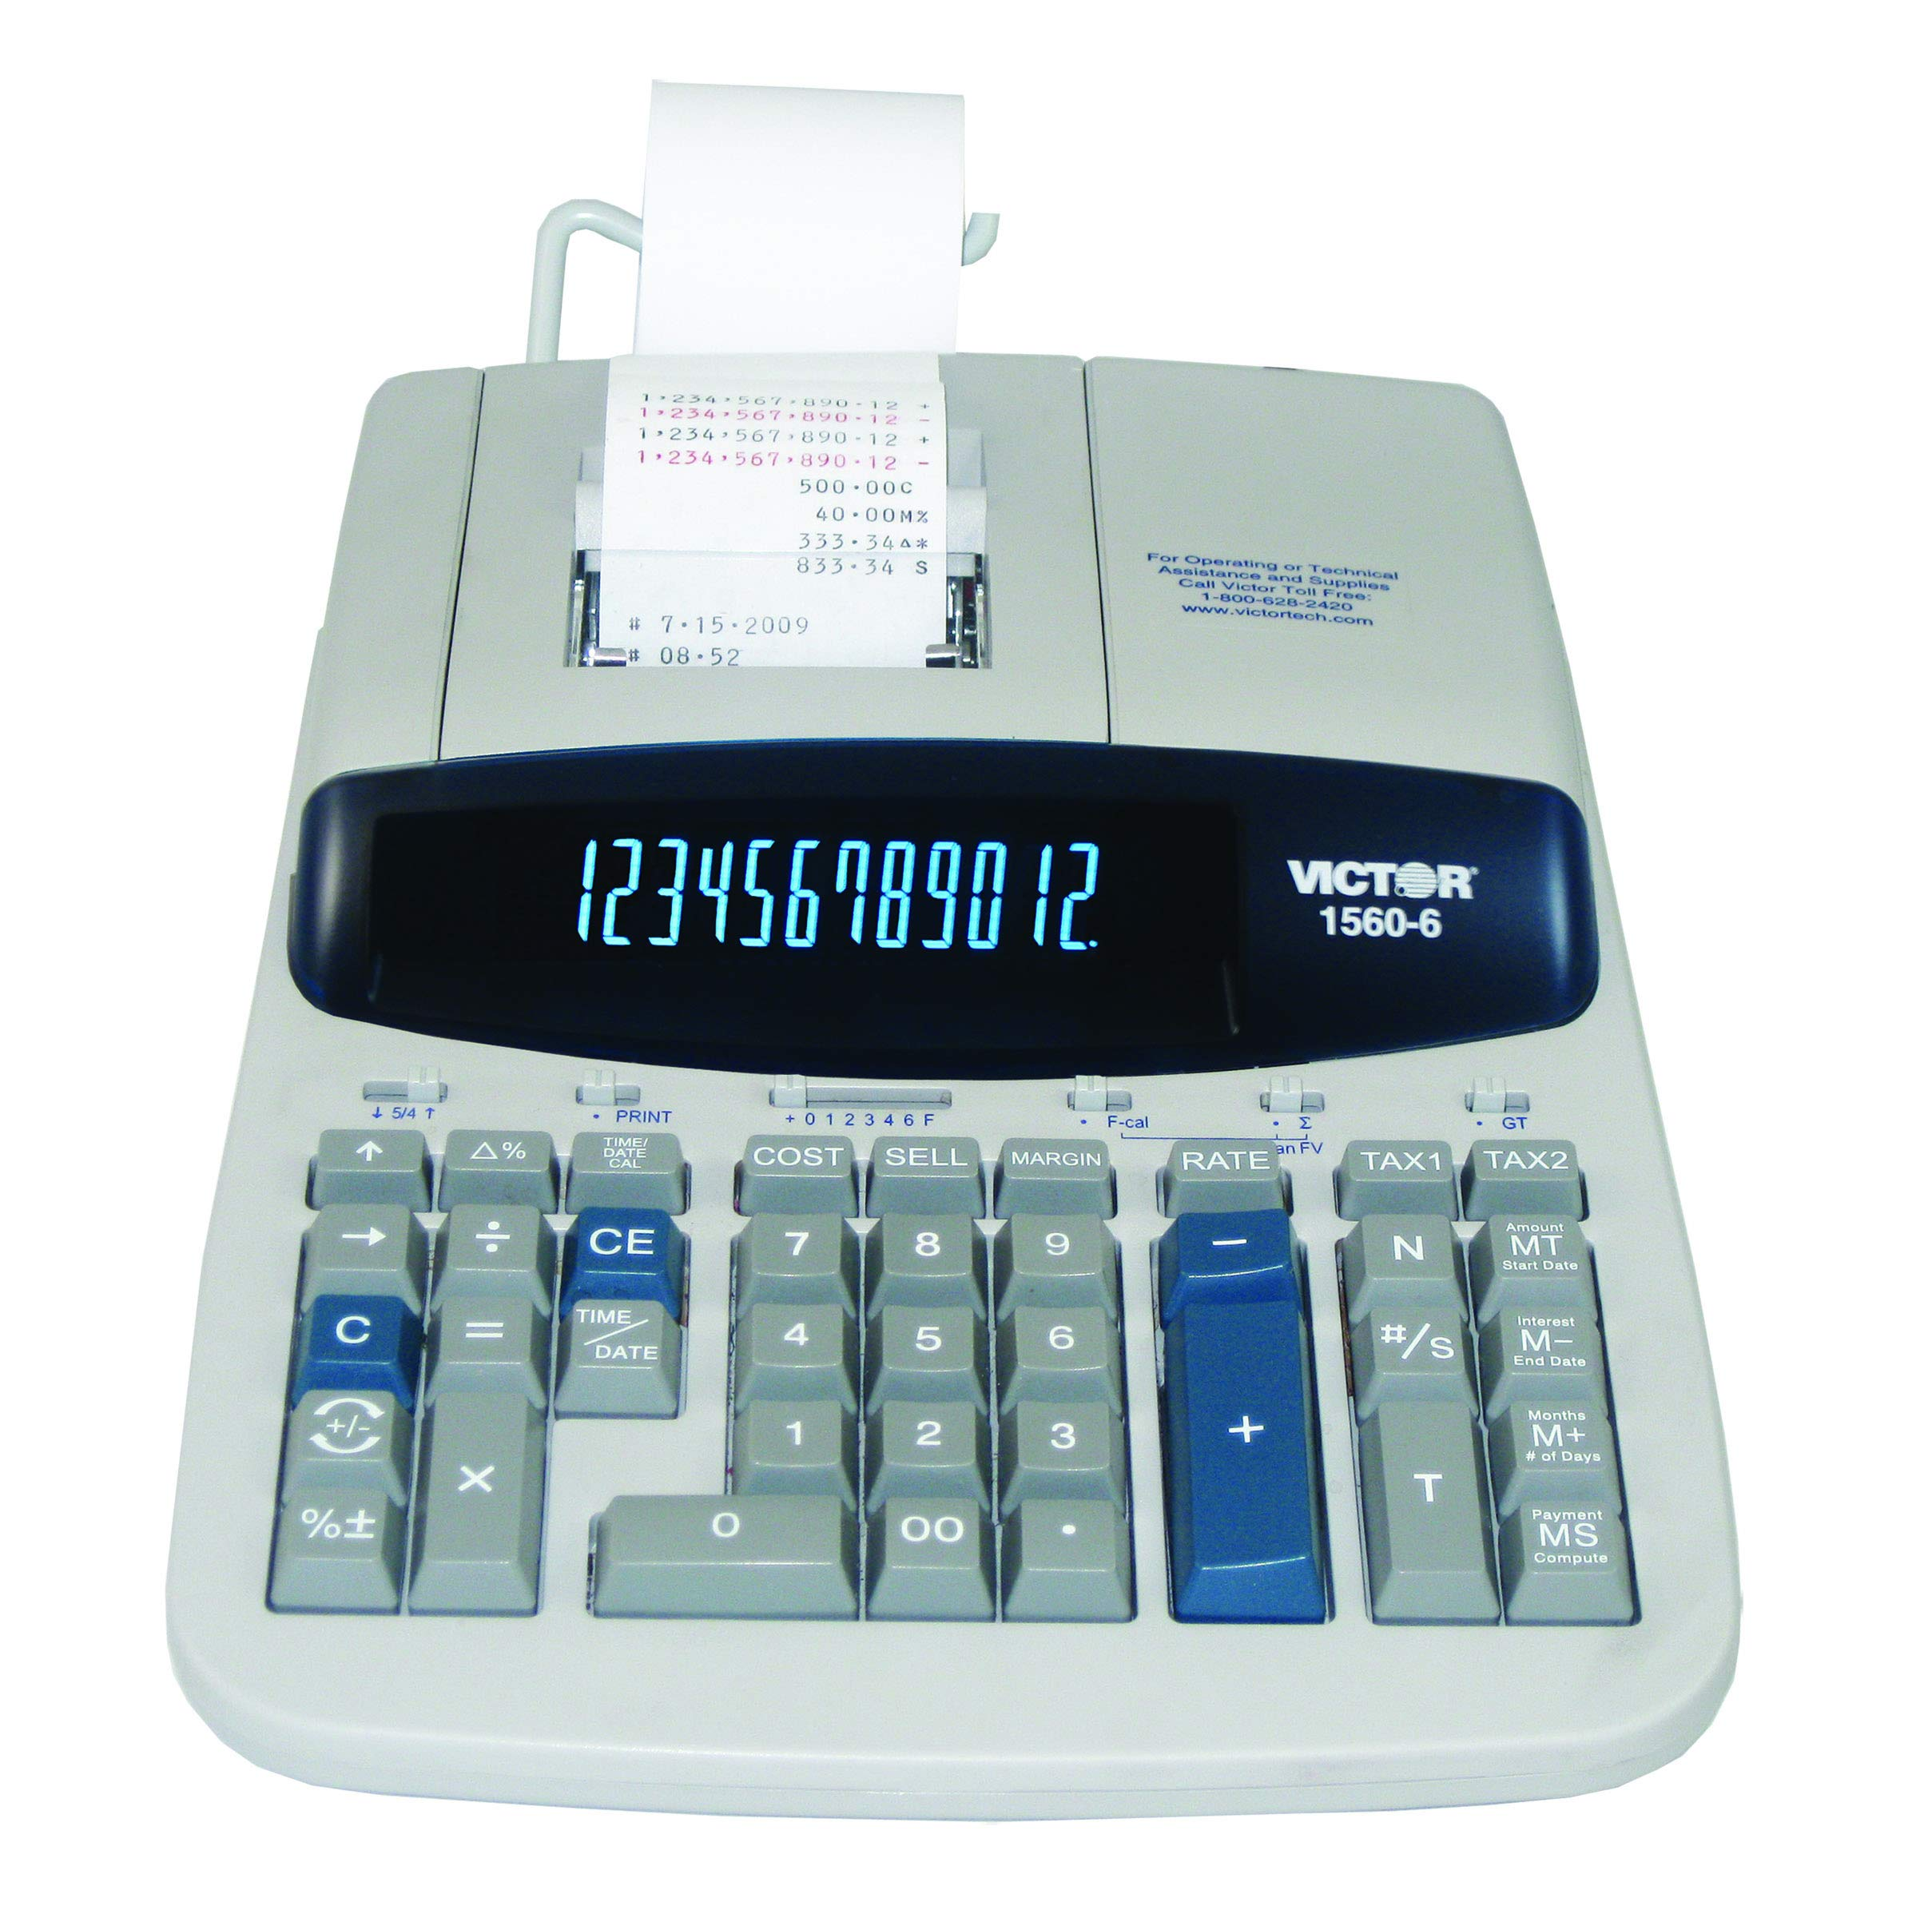 Victor 1560-6 12 Digit Heavy Duty Commercial Printing Calculator with Large Display and Loan Wizard by Victor